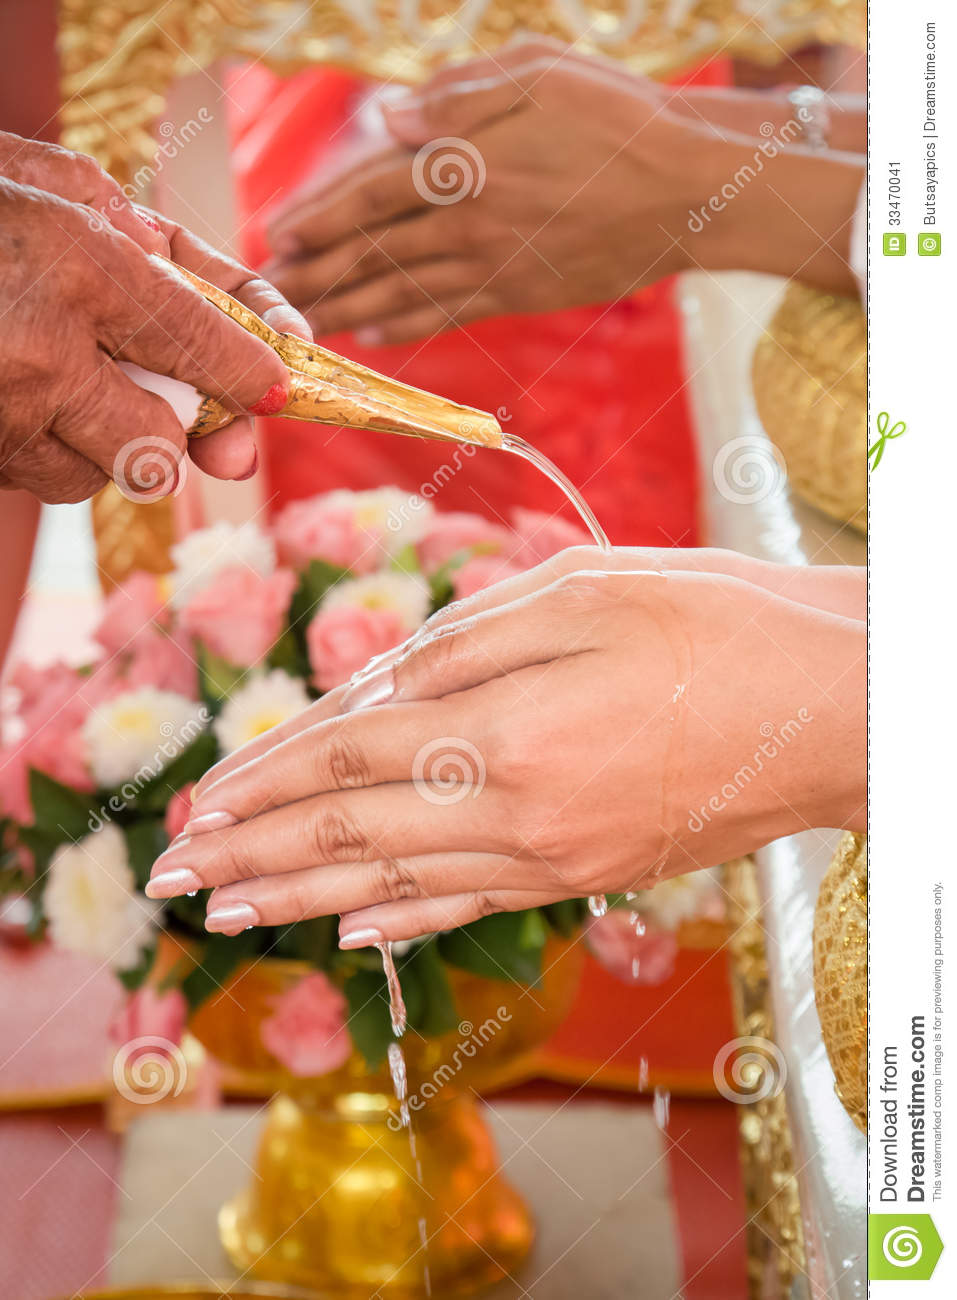 stock images bride price money thai wedding ceremony image